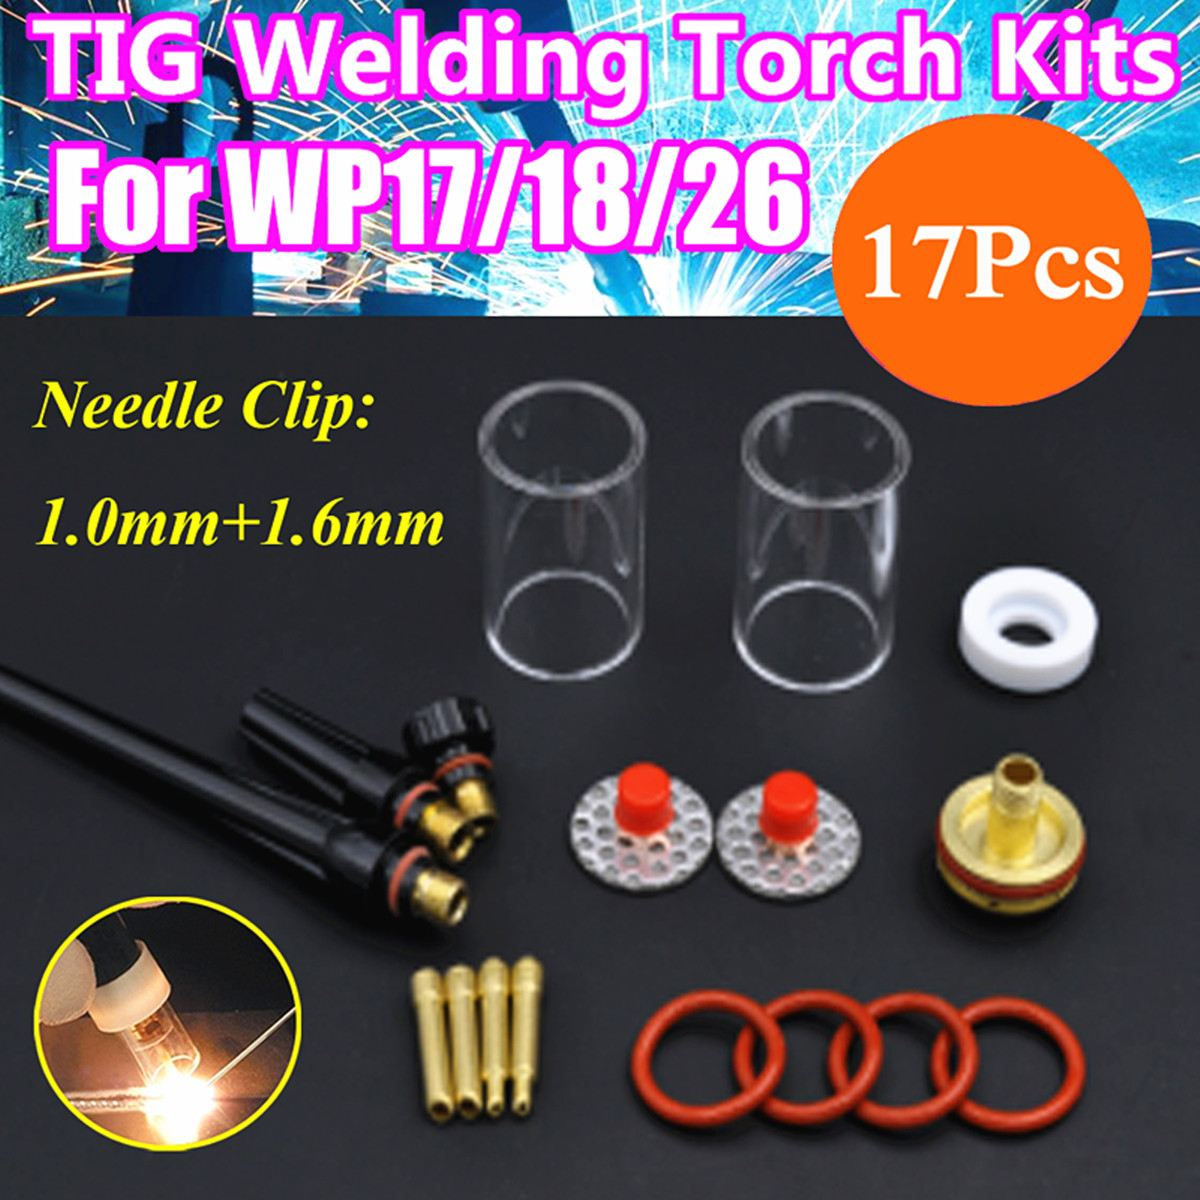 17Pcs/Set TIG Welding Torch Stubby Collet Gas Lens Nozzle Glass Pryex Cup Kit with Heat-Resistant O-rings For WP-17/18/26 Series wp 17f sr 17f tig welding torch complete 20feet 6meter soldering iron flexible